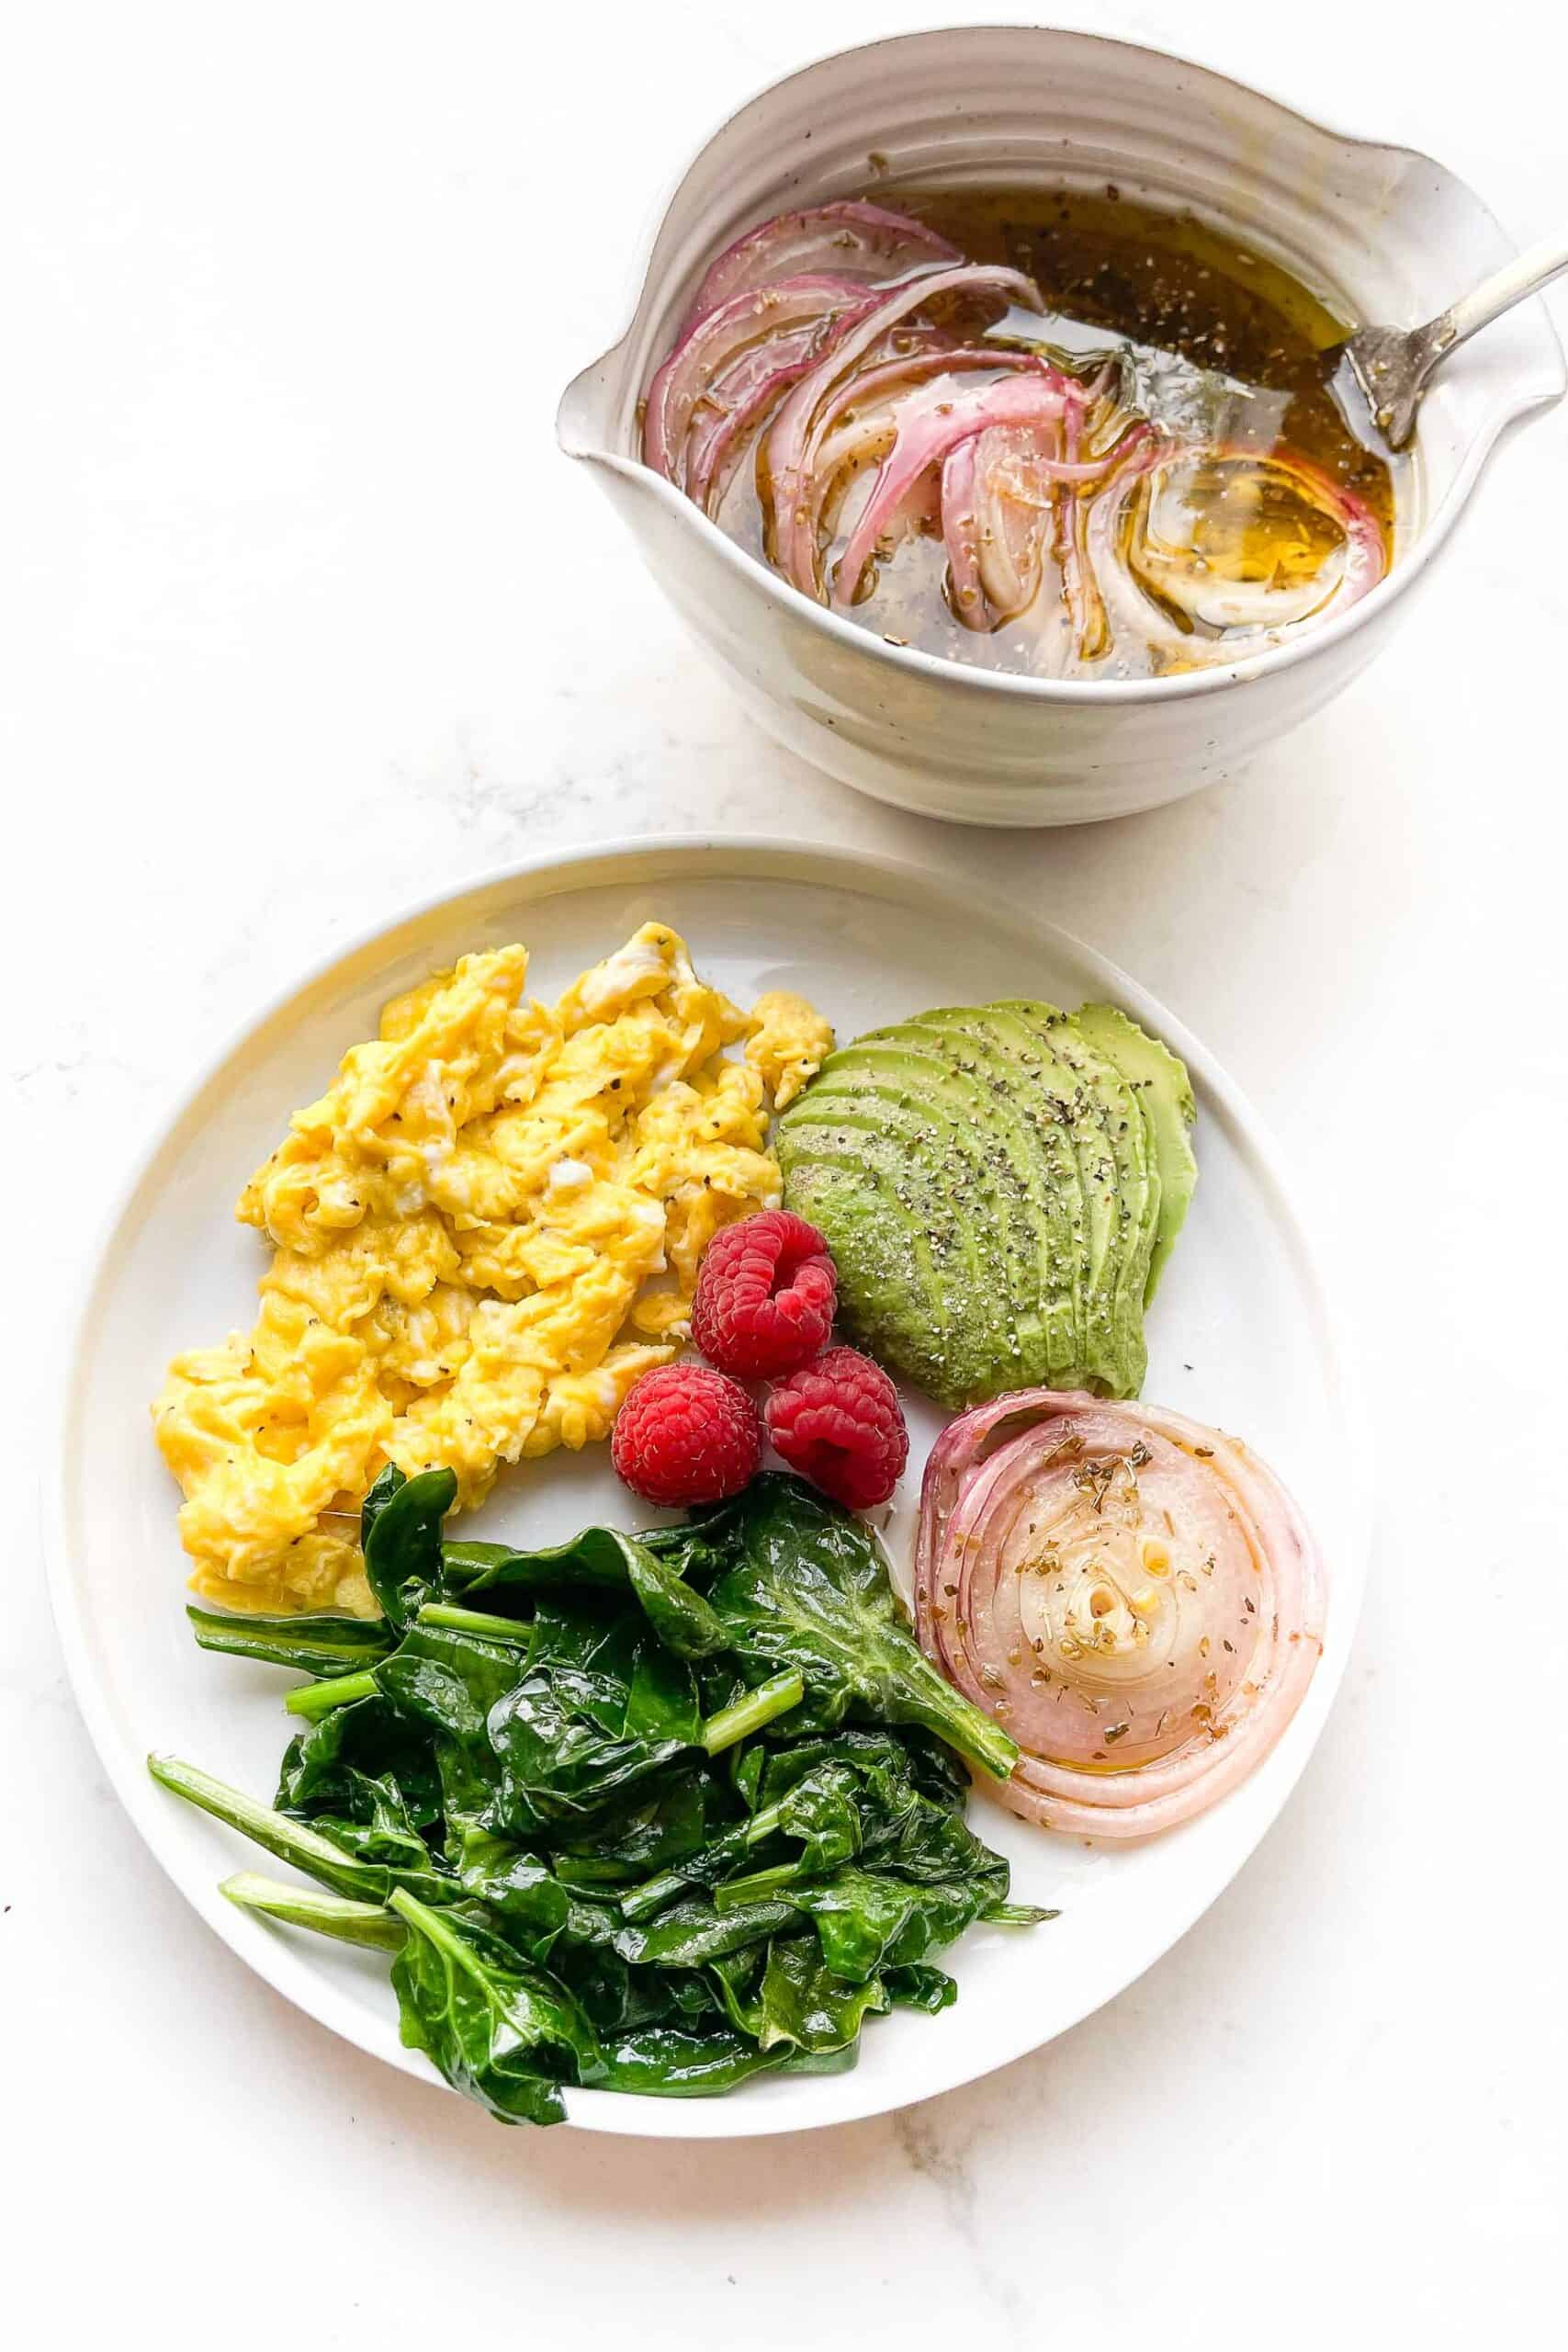 scrambled eggs, sauteed spinach, avocado, red onion and raspberries on a white plate and background